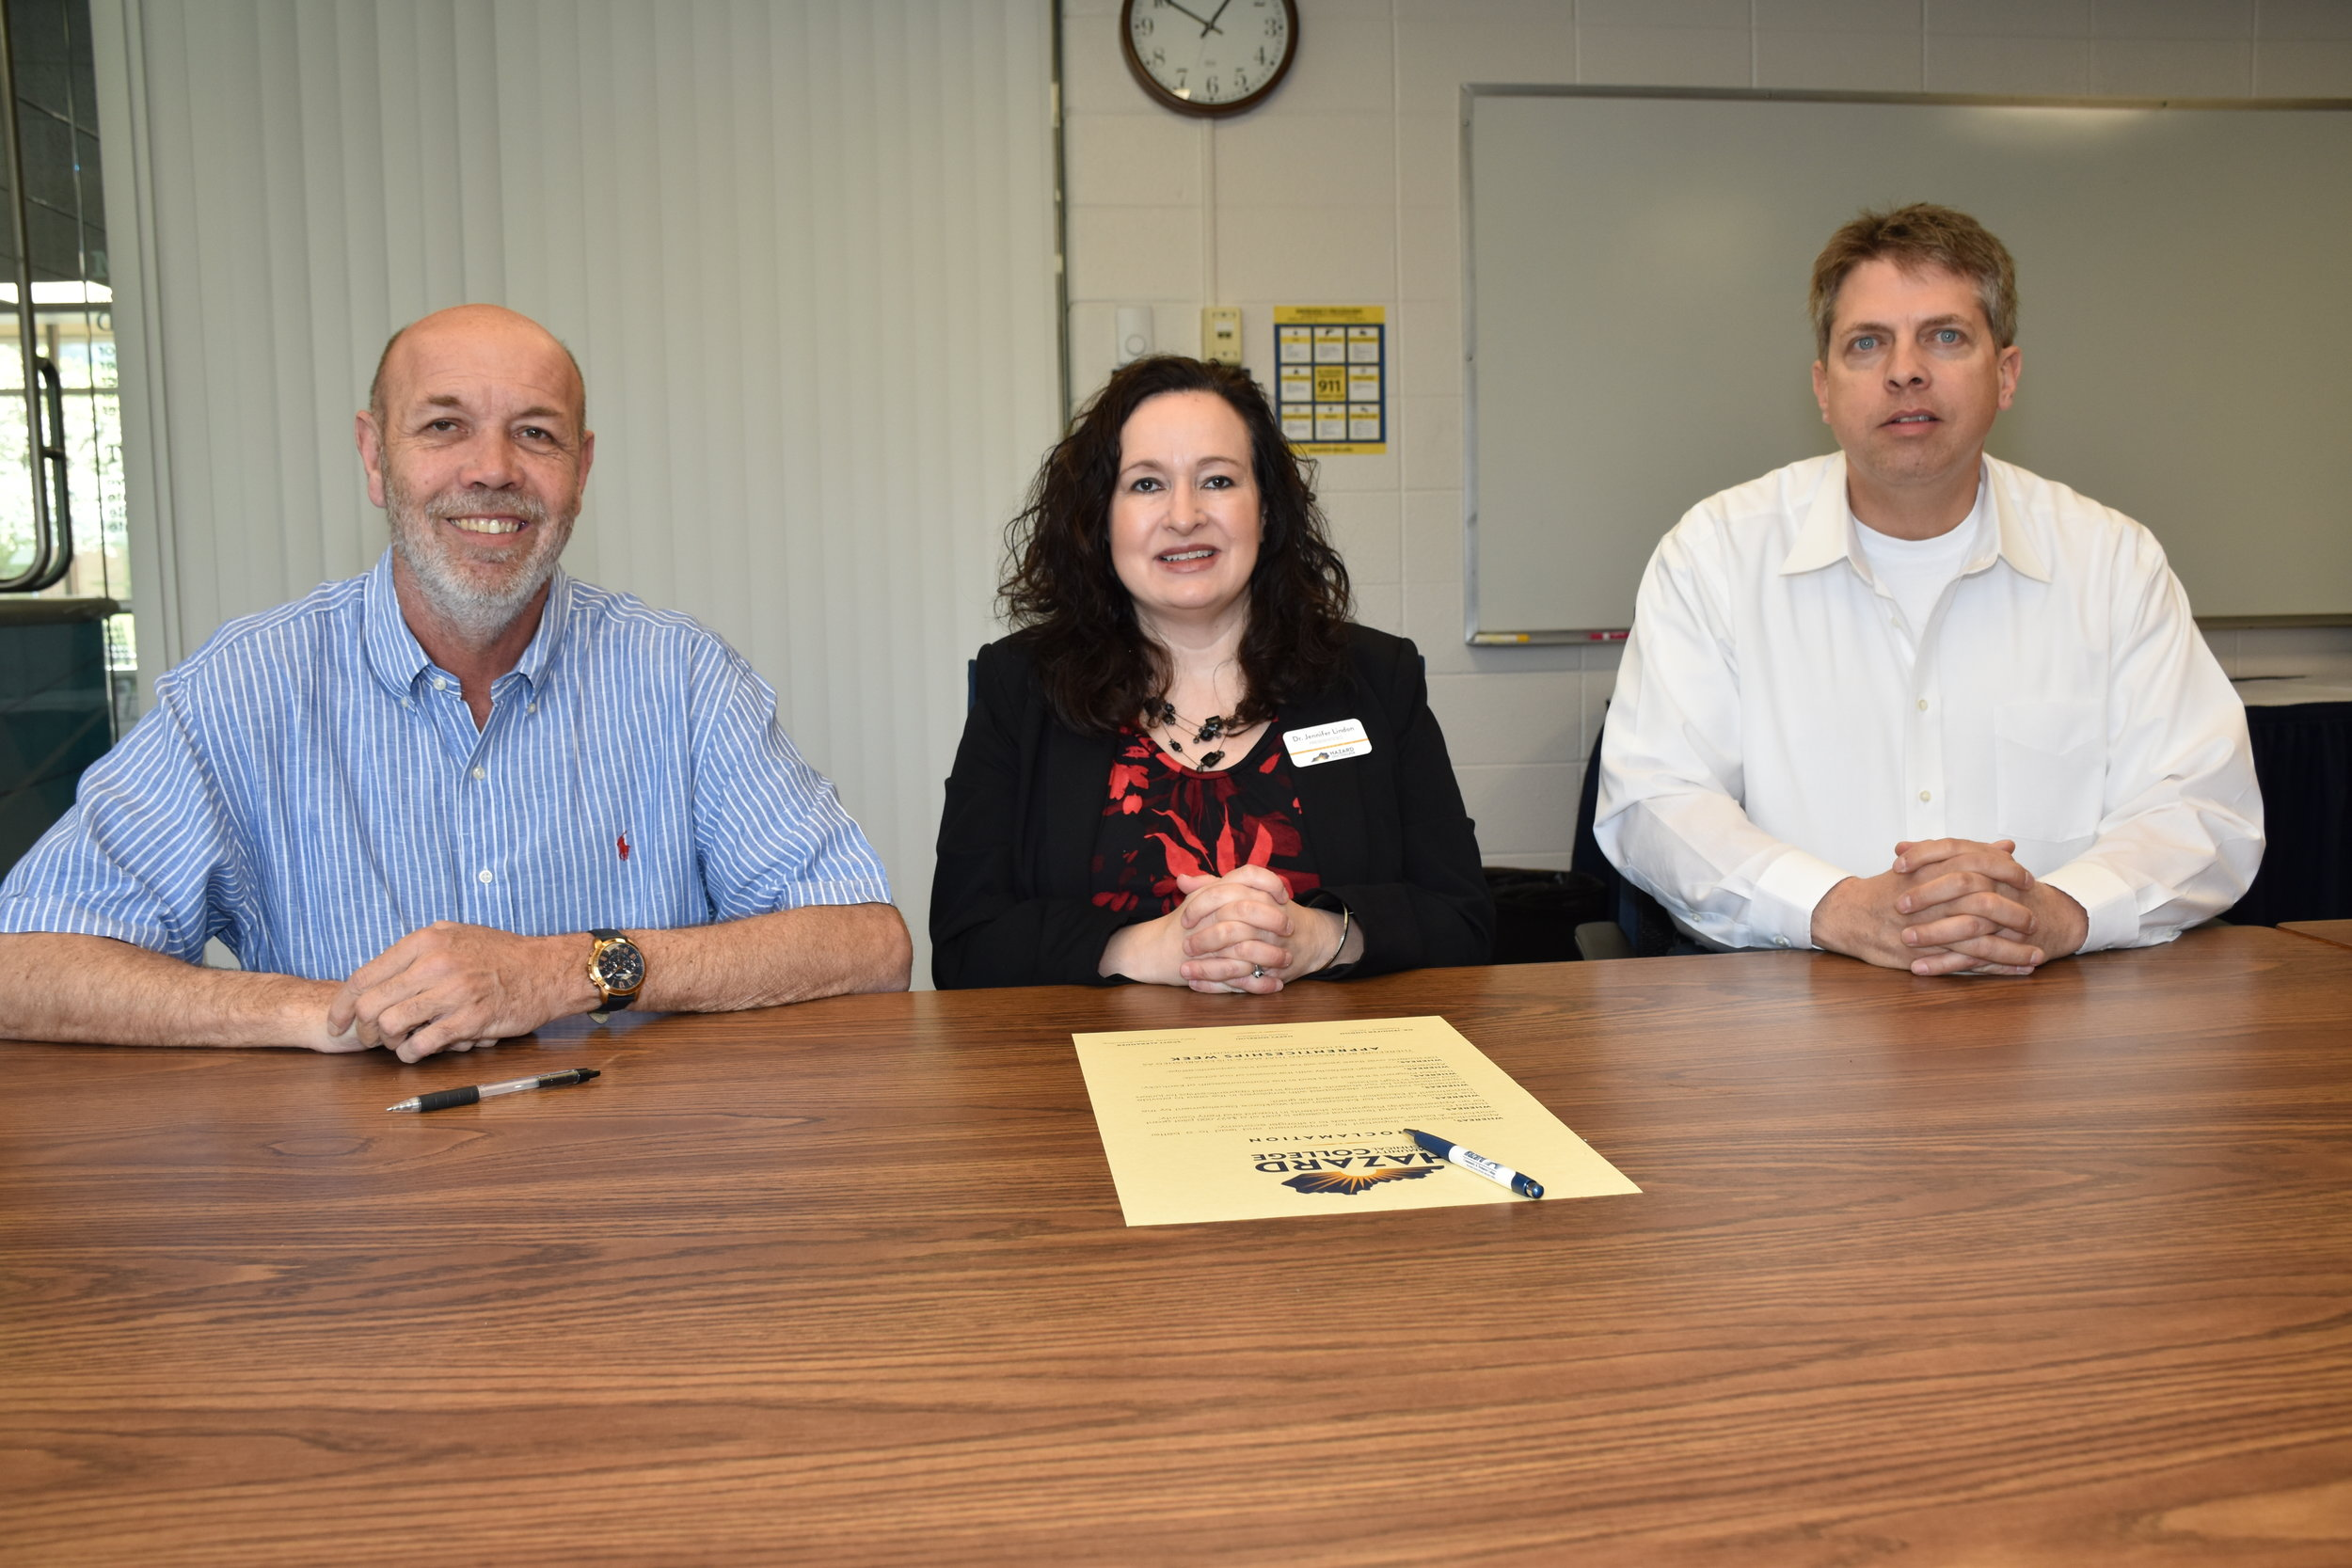 May 6-11 is declared as Apprenticeships Week in Hazard and Perry County. A signing ceremony was held, with signatures from Hazard Mayor Happy Mobelini, Hazard Community and Technical College President Dr. Jennifer Lindon, and Perry County Judge Executive Scott Alexander. A grant is being awarded to create an apprenticeship program for high school students in Hazard and Perry County. Hazard Community and Technical College, in partnership with Juniper Health, Appalachian Regional Healthcare, University of Kentucky, Hazard Independent School System, and Perry County School System, will create an apprenticeship pathway, beginning in ninth grade and culminating in paid apprenticeships for juniors and seniors in high school